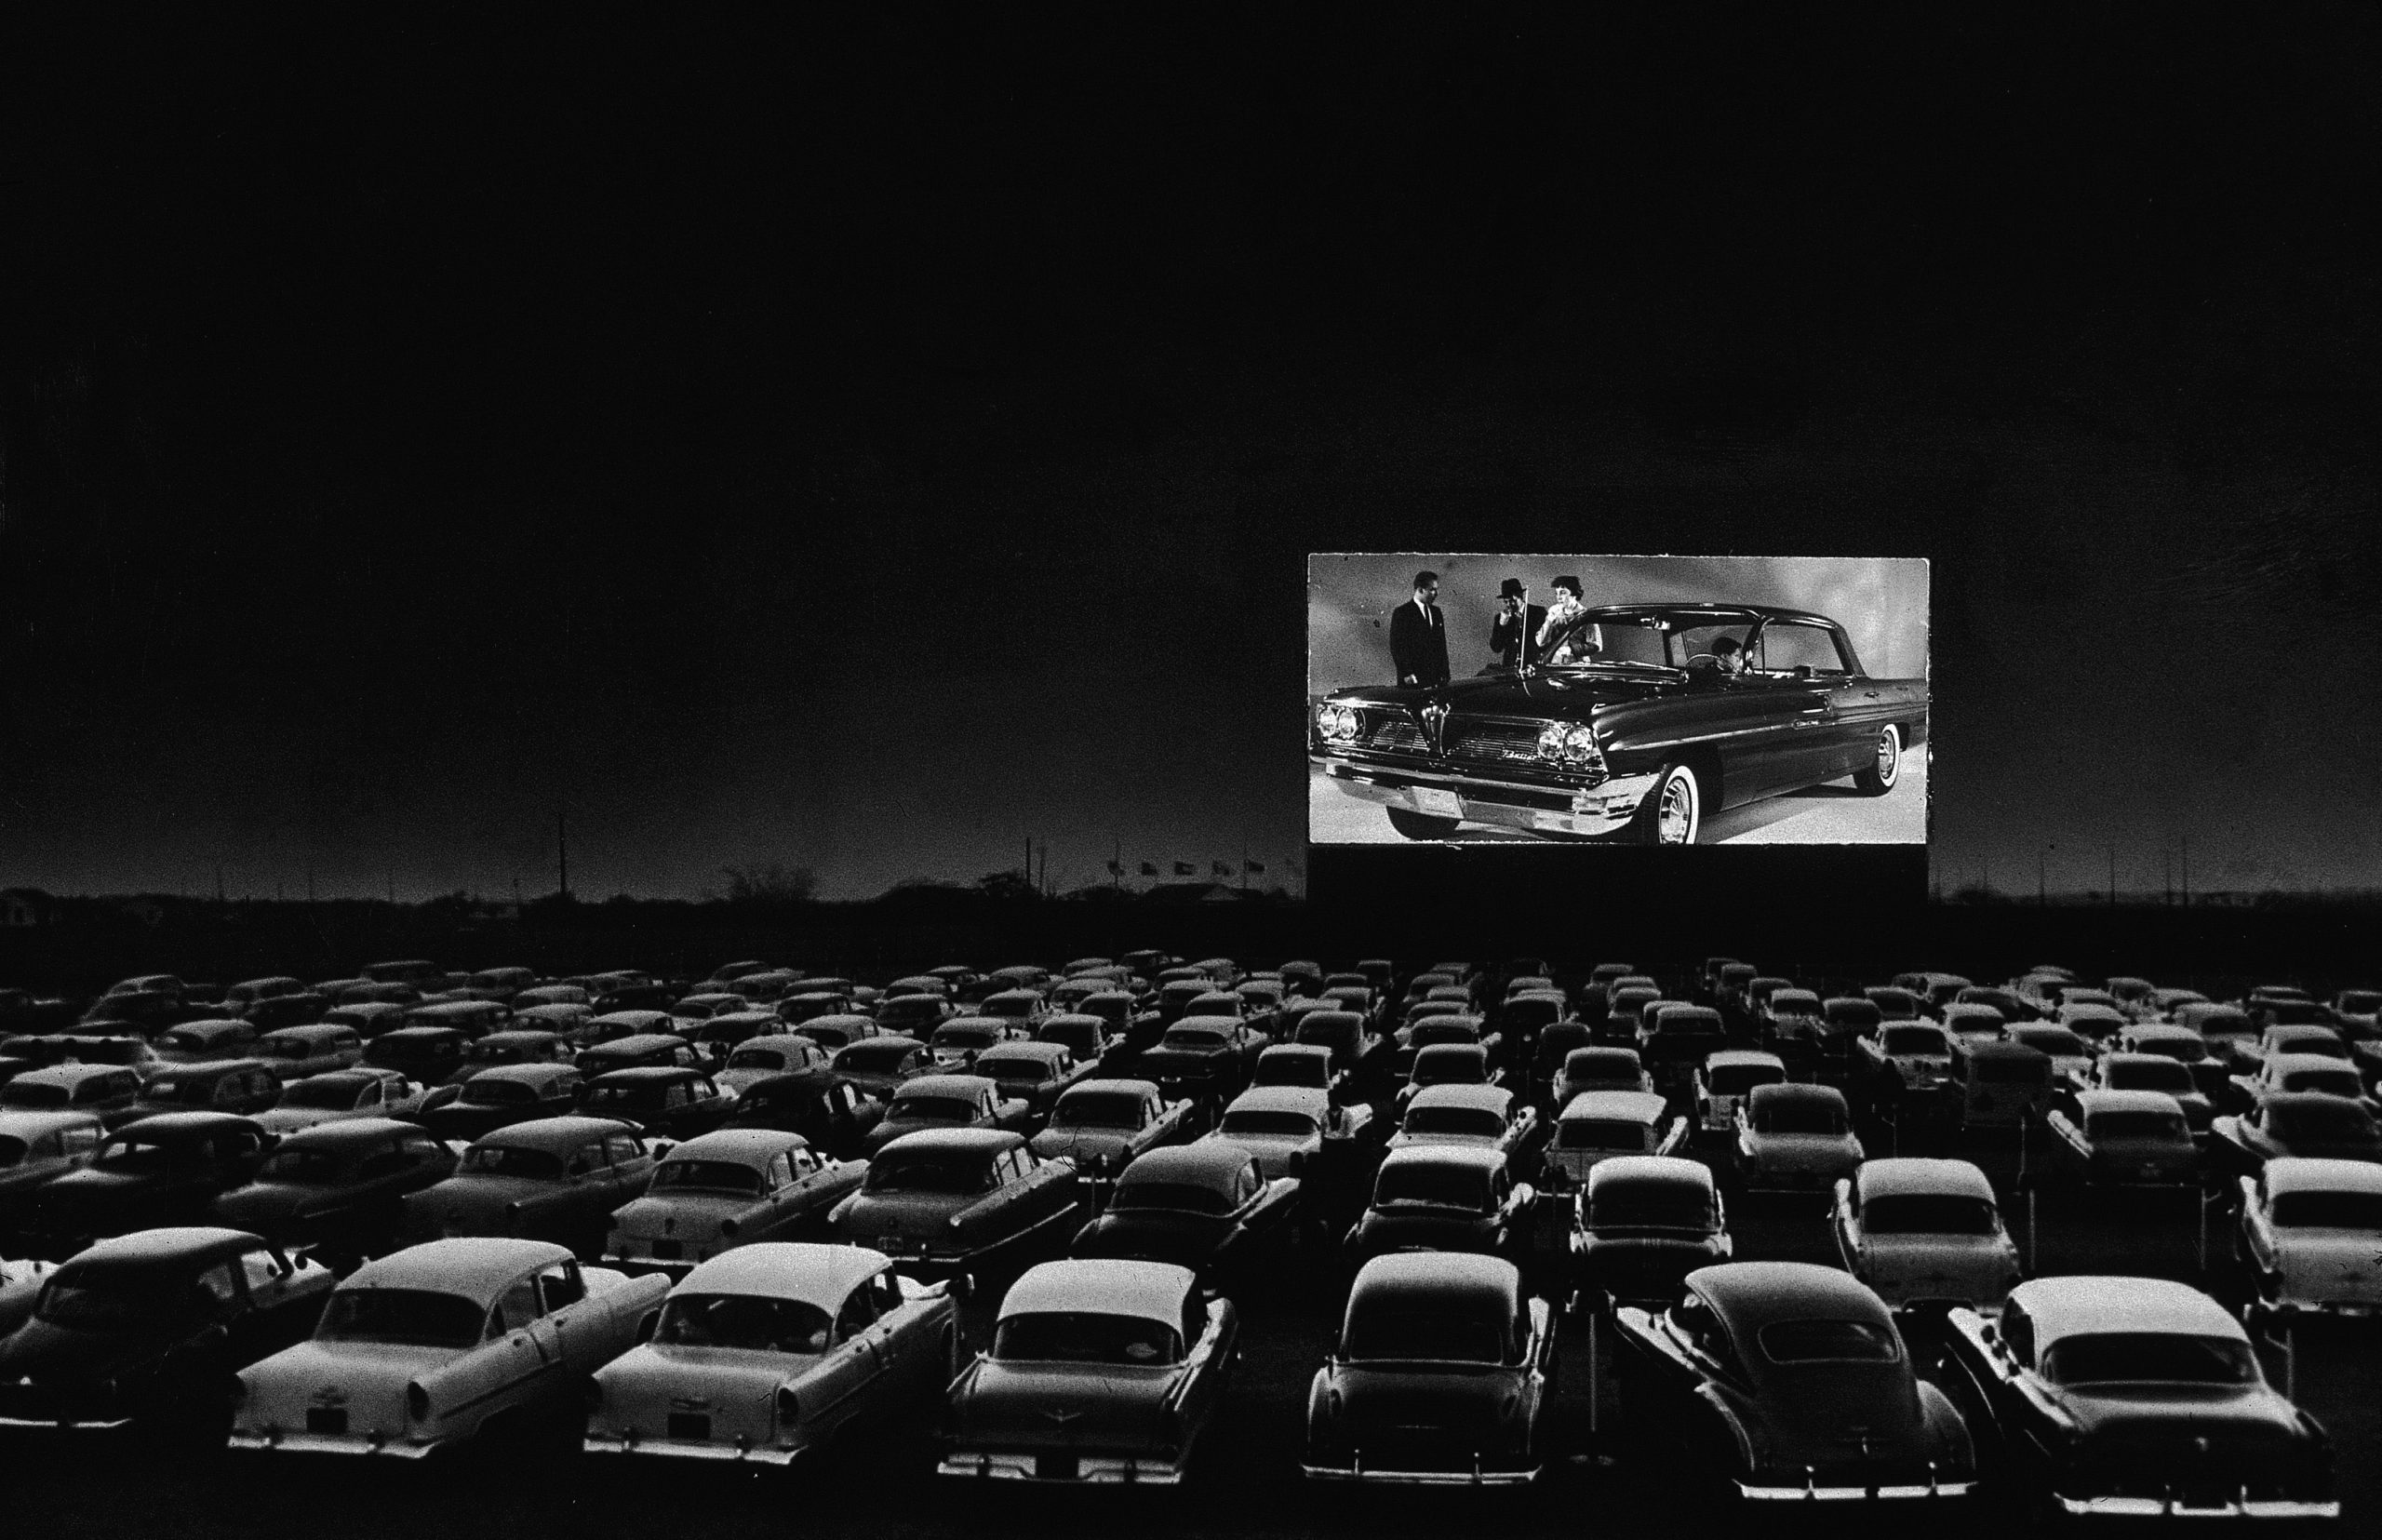 Drive-In Cinema [Source: Harpers Bazaar]